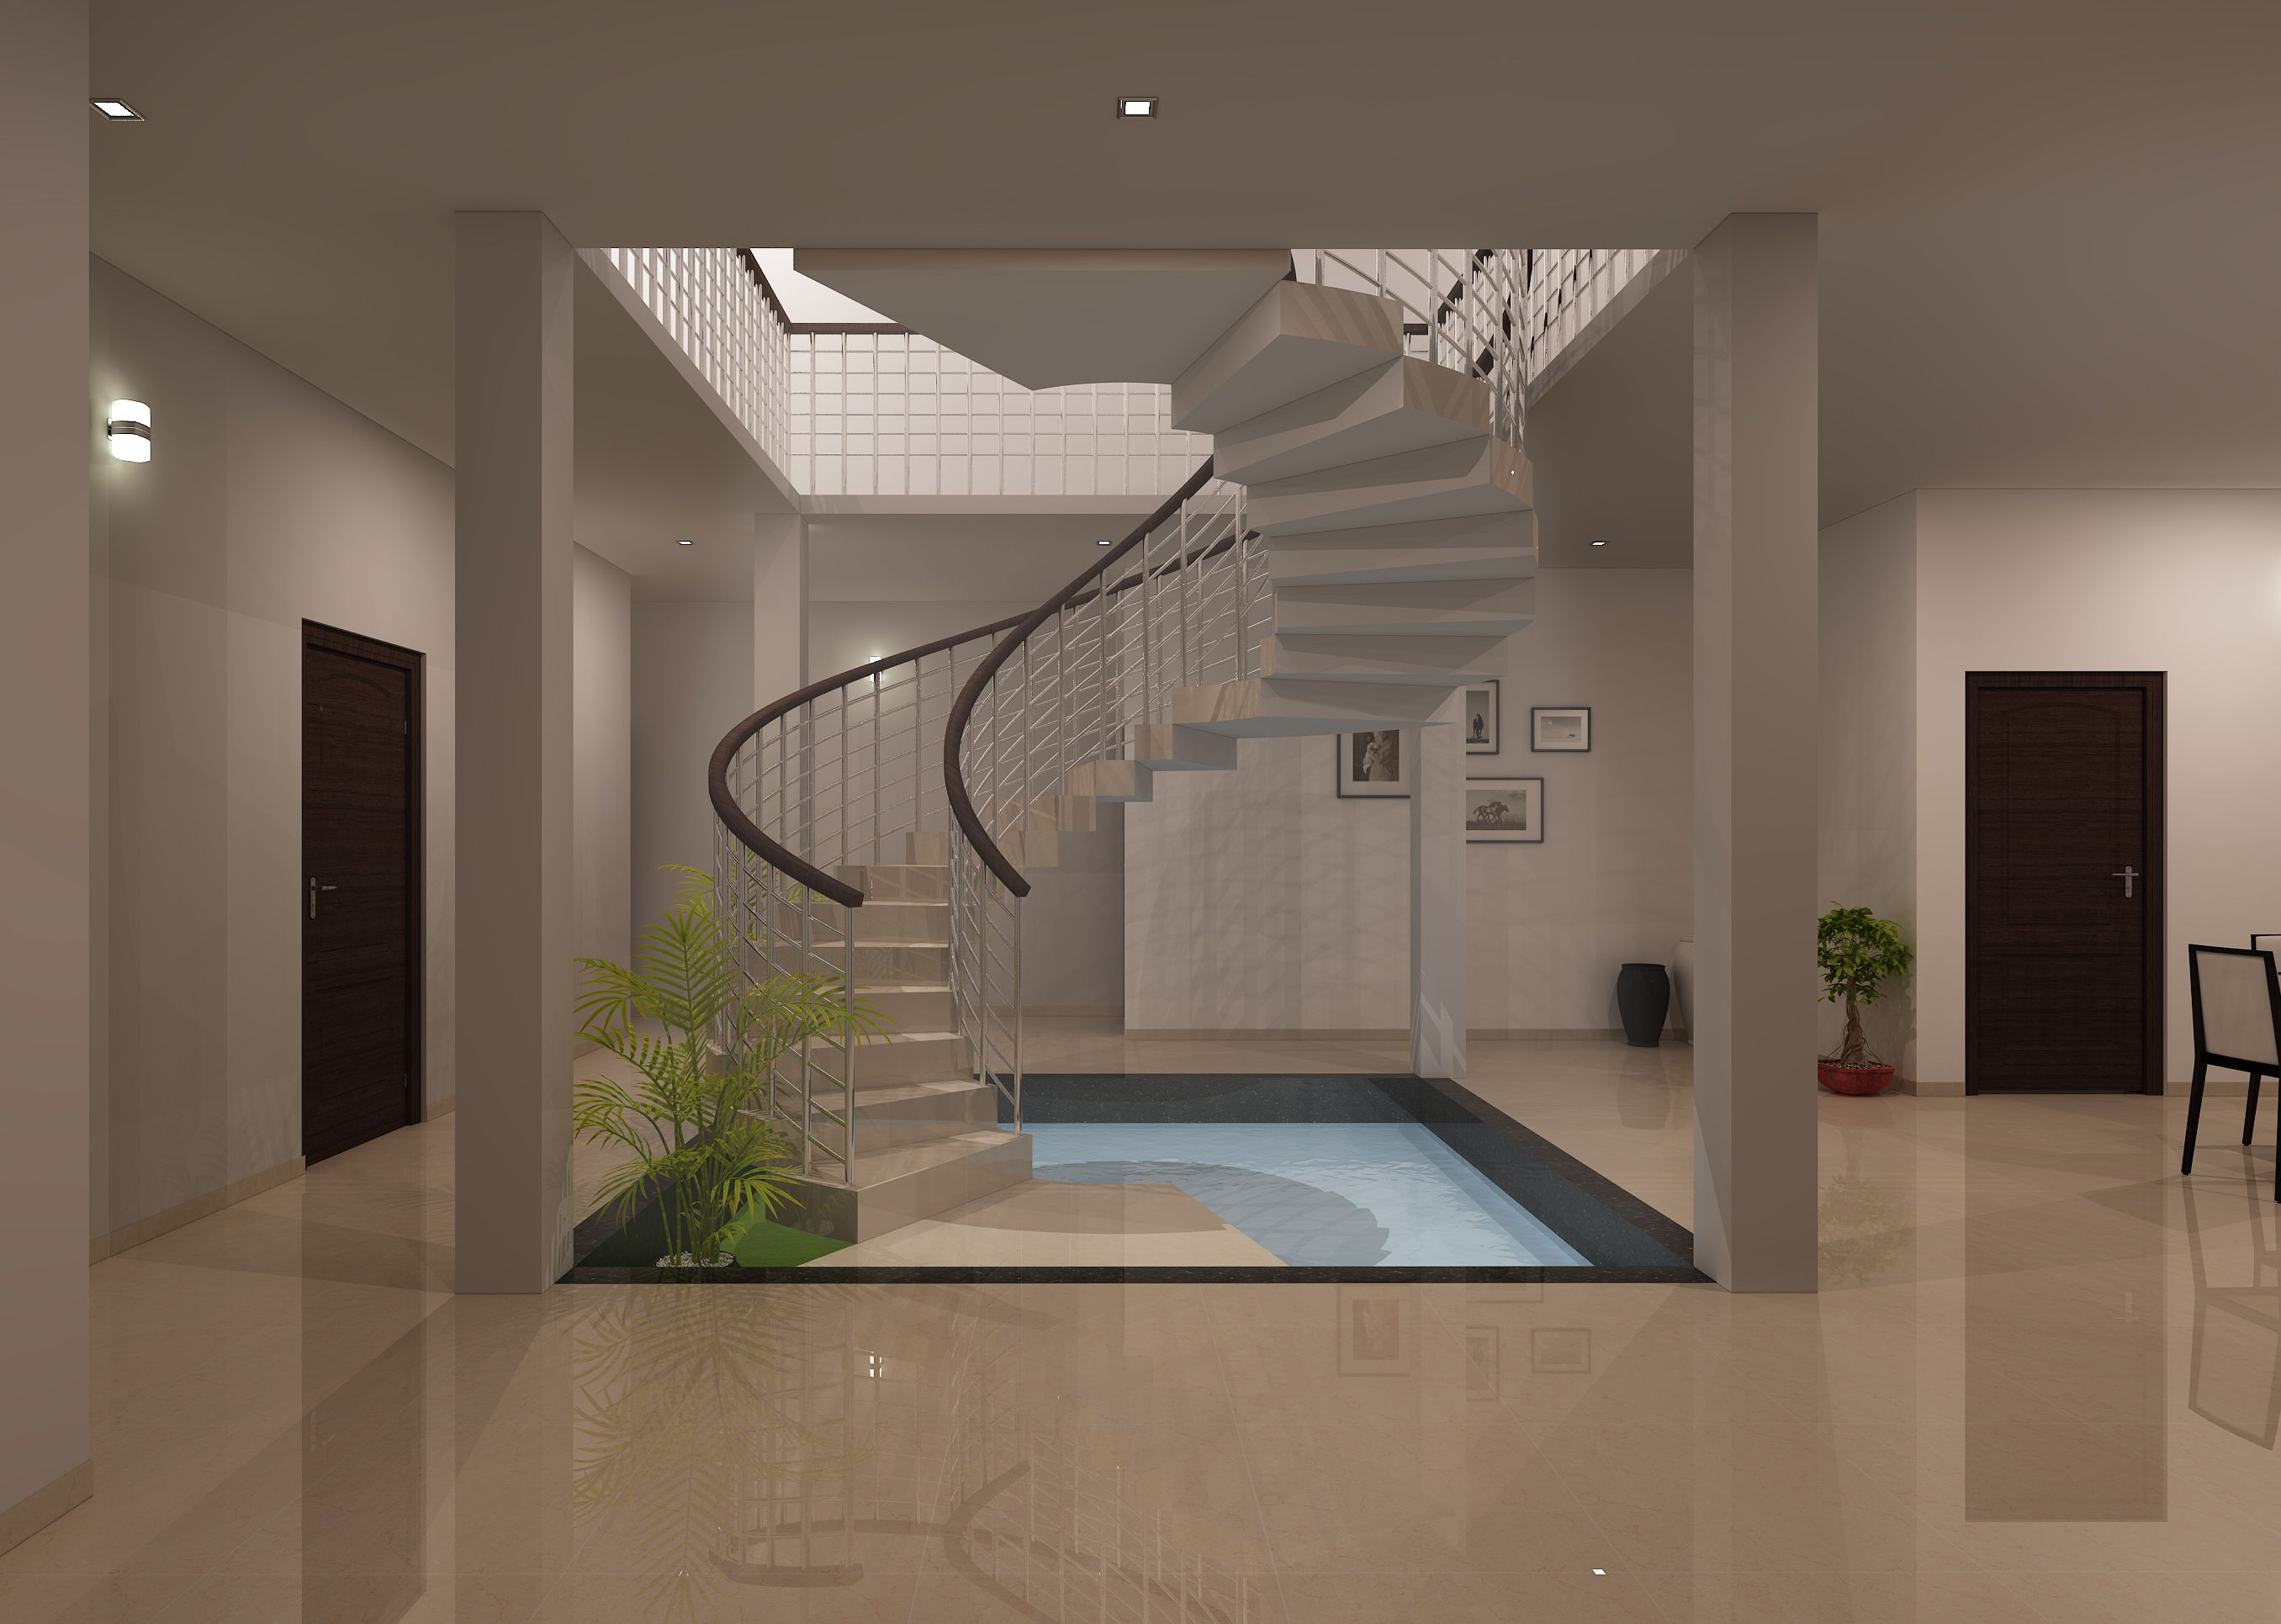 D'life home interiors ernakulam kochi kerala kerala home designs keralahomedesigns on pinterest